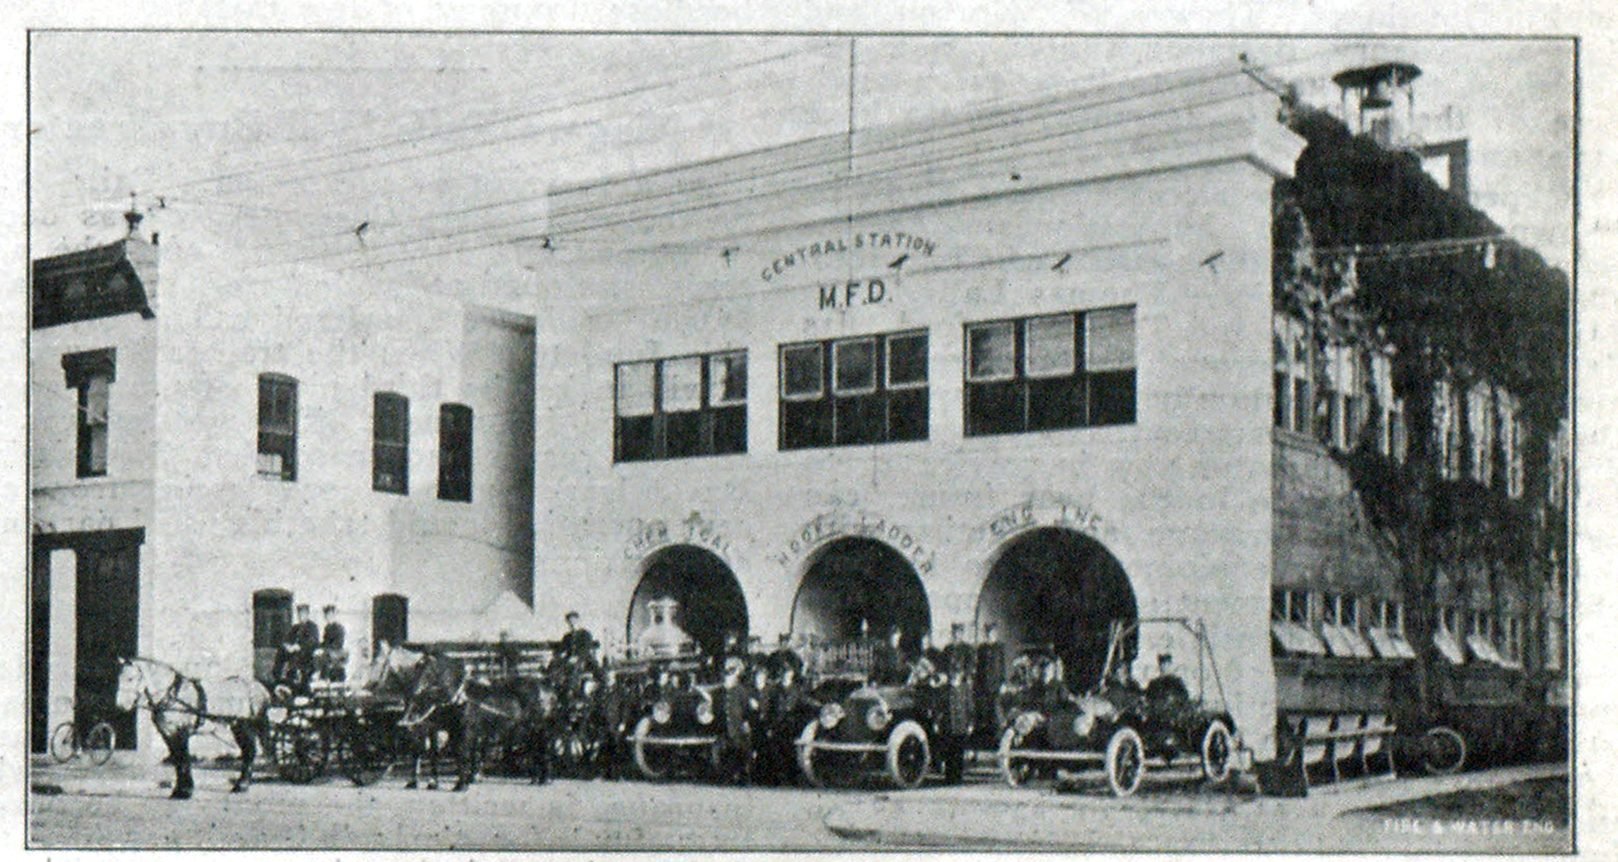 HEADQUARTERS OF THE MIAMI, FLA., FIRE DEPARTMENT.